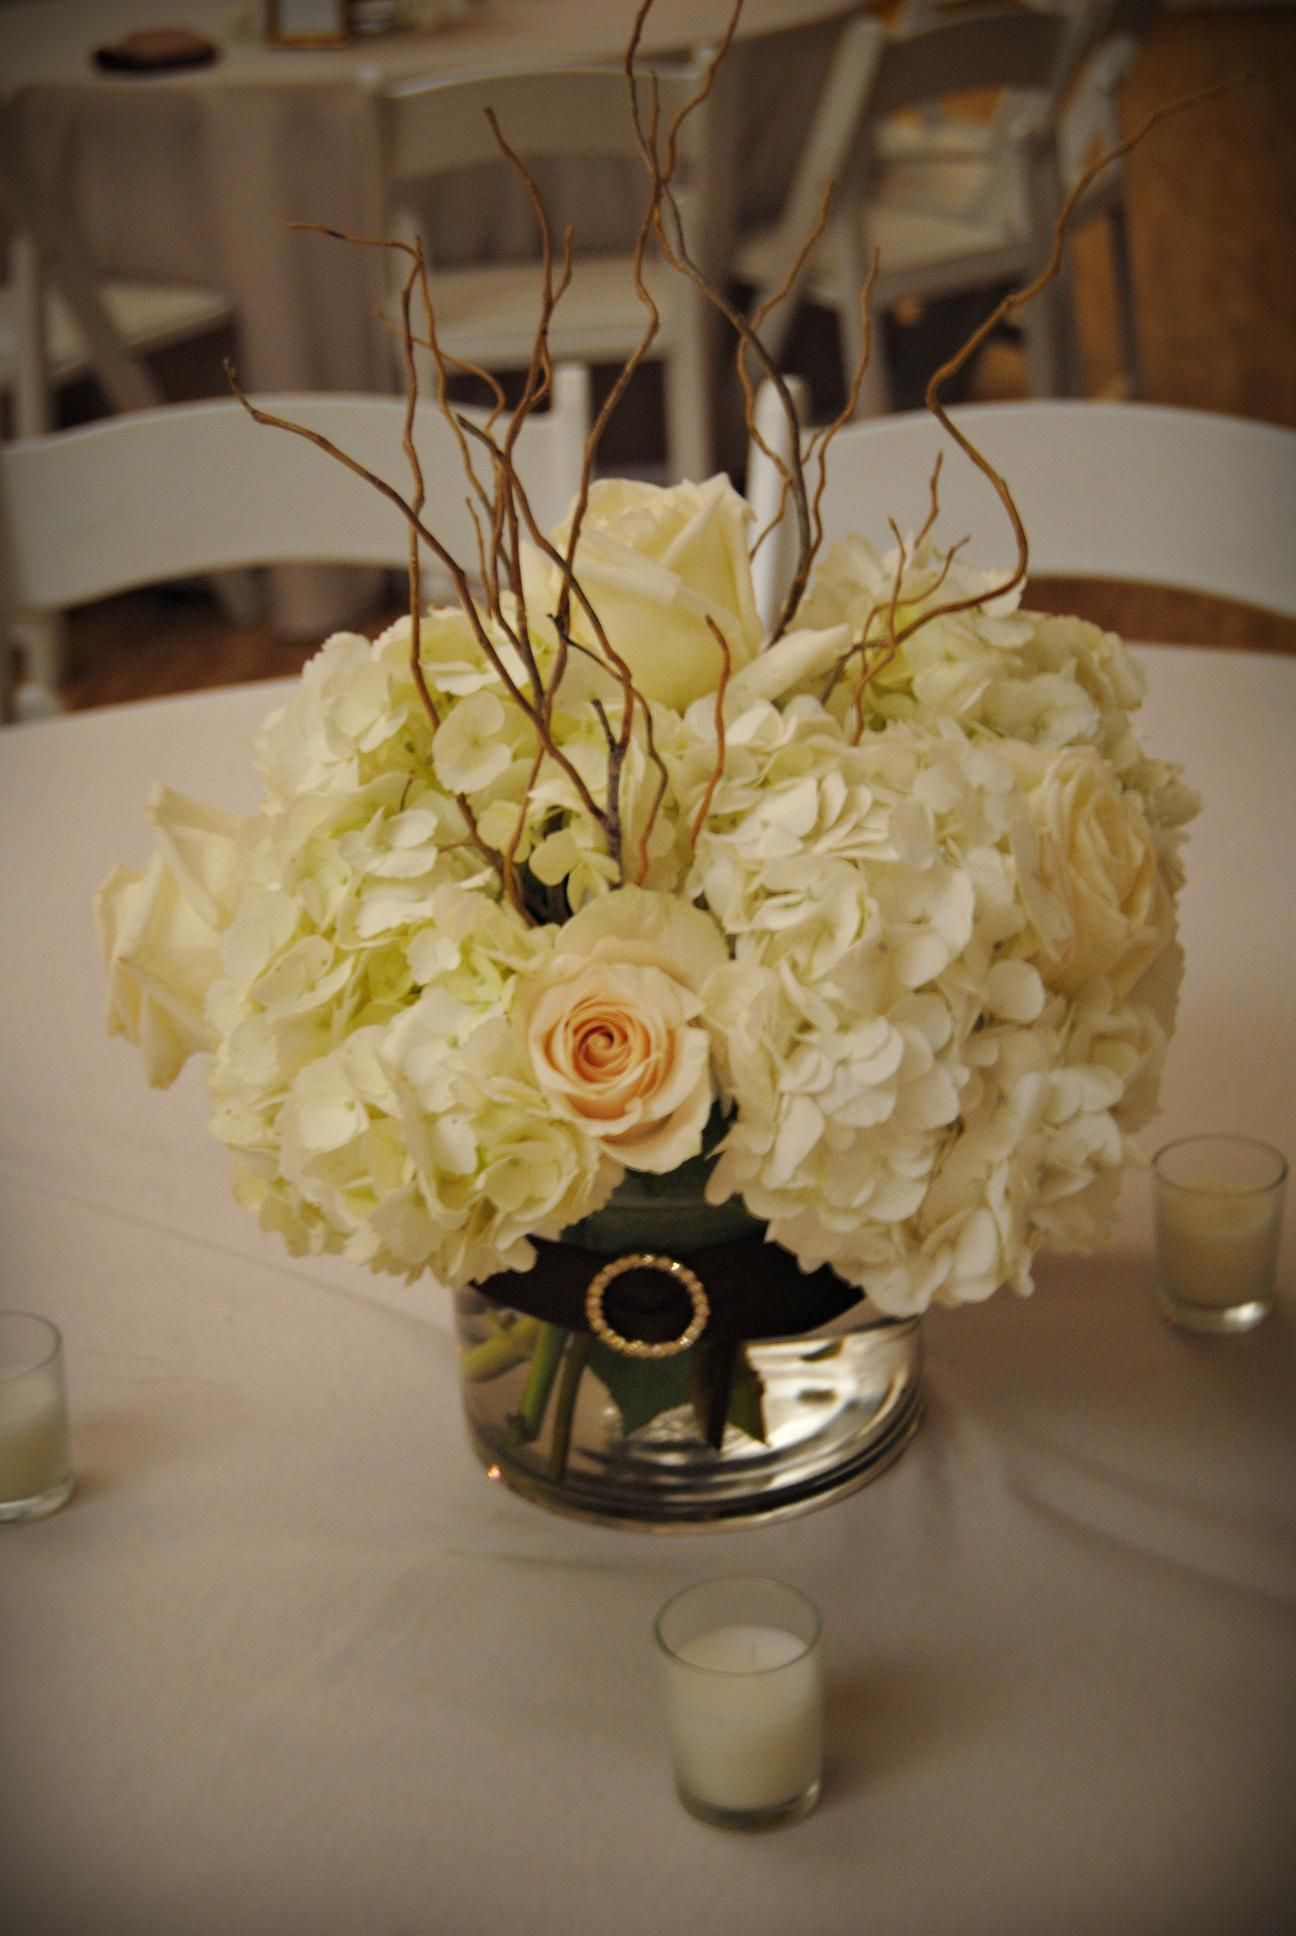 Green Curly Willow Reception Table Piece Of White Hydrangeas Roses And Curly Willow Green Hydrangea Wedding Wedding Centerpieces Curly Willow Centerpieces